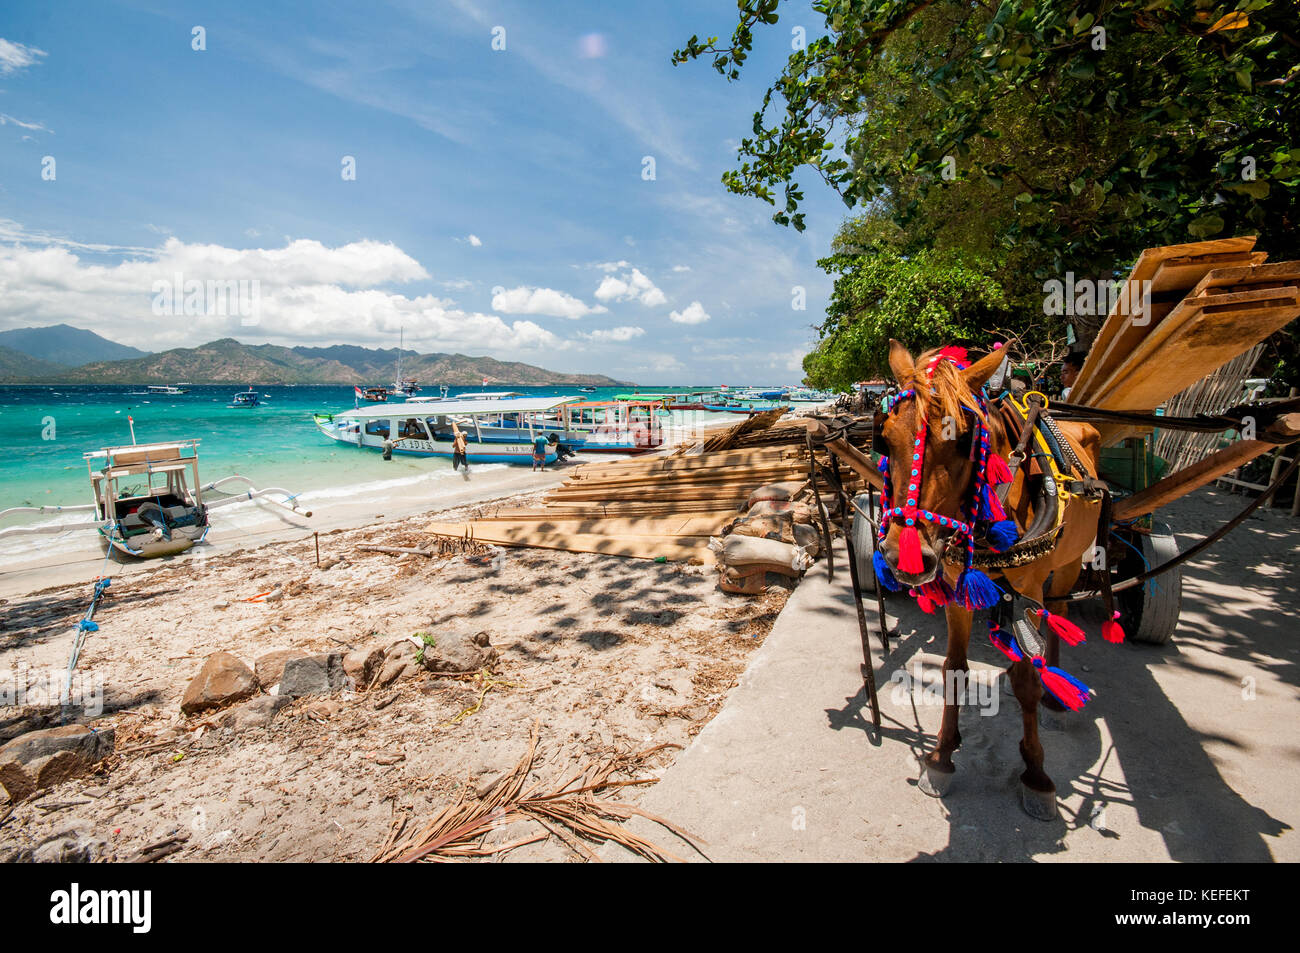 Gili Air, traditional Indonesian boat moored up, Gili Islands, Indonesia, Southeast Asia, Asia - Stock Image